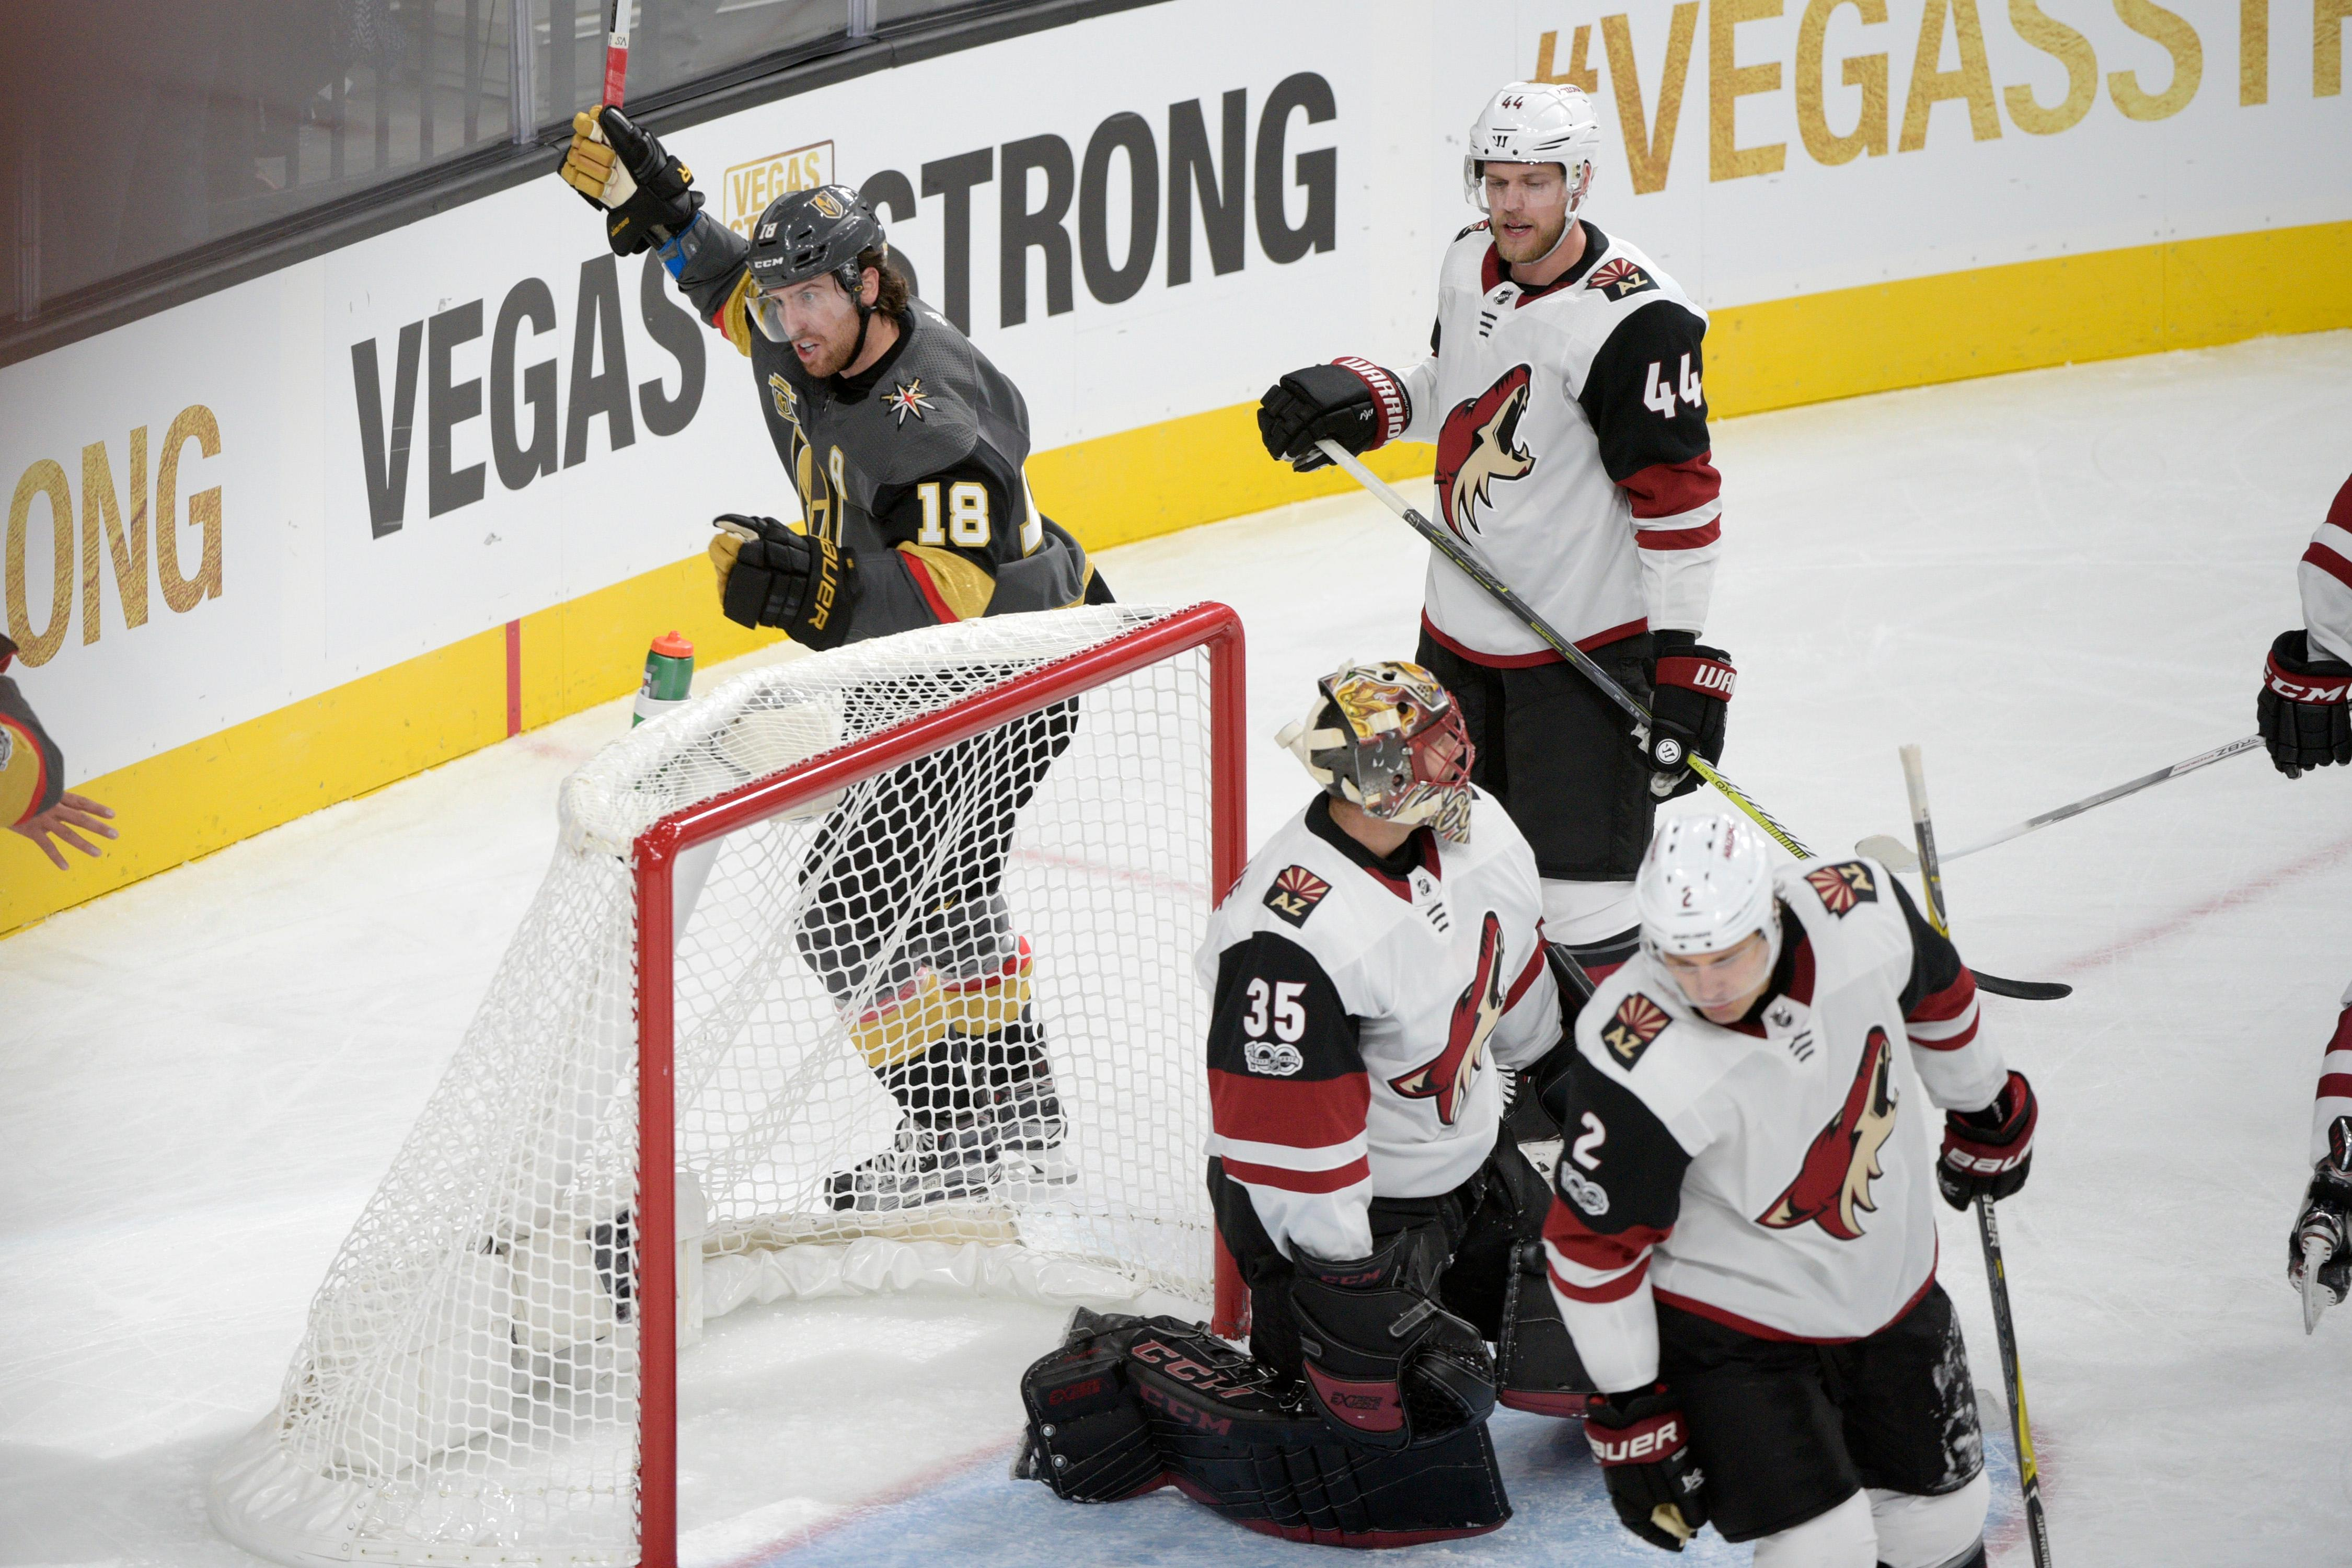 Vegas Golden Knights right wing James Neal (18) celebrates his gaol against the Arizona Coyotes during the Knights home opener Tuesday, Oct. 10, 2017, at the T-Mobile Arena. The Knights won 5-2 to extend their winning streak to 3-0. CREDIT: Sam Morris/Las Vegas News Bureau